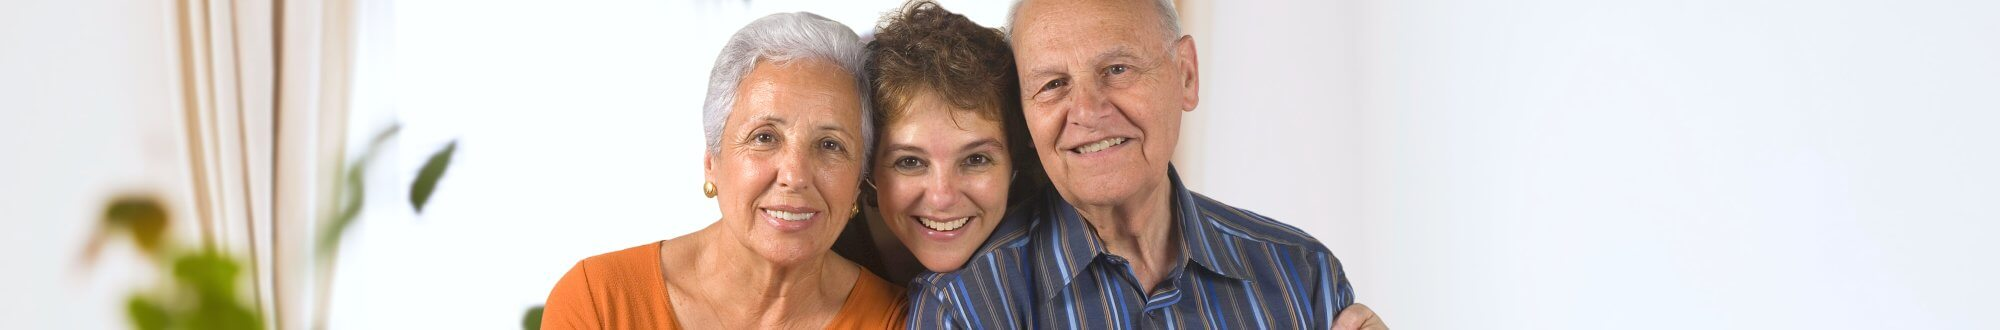 caregiver and an elderly couple smiling